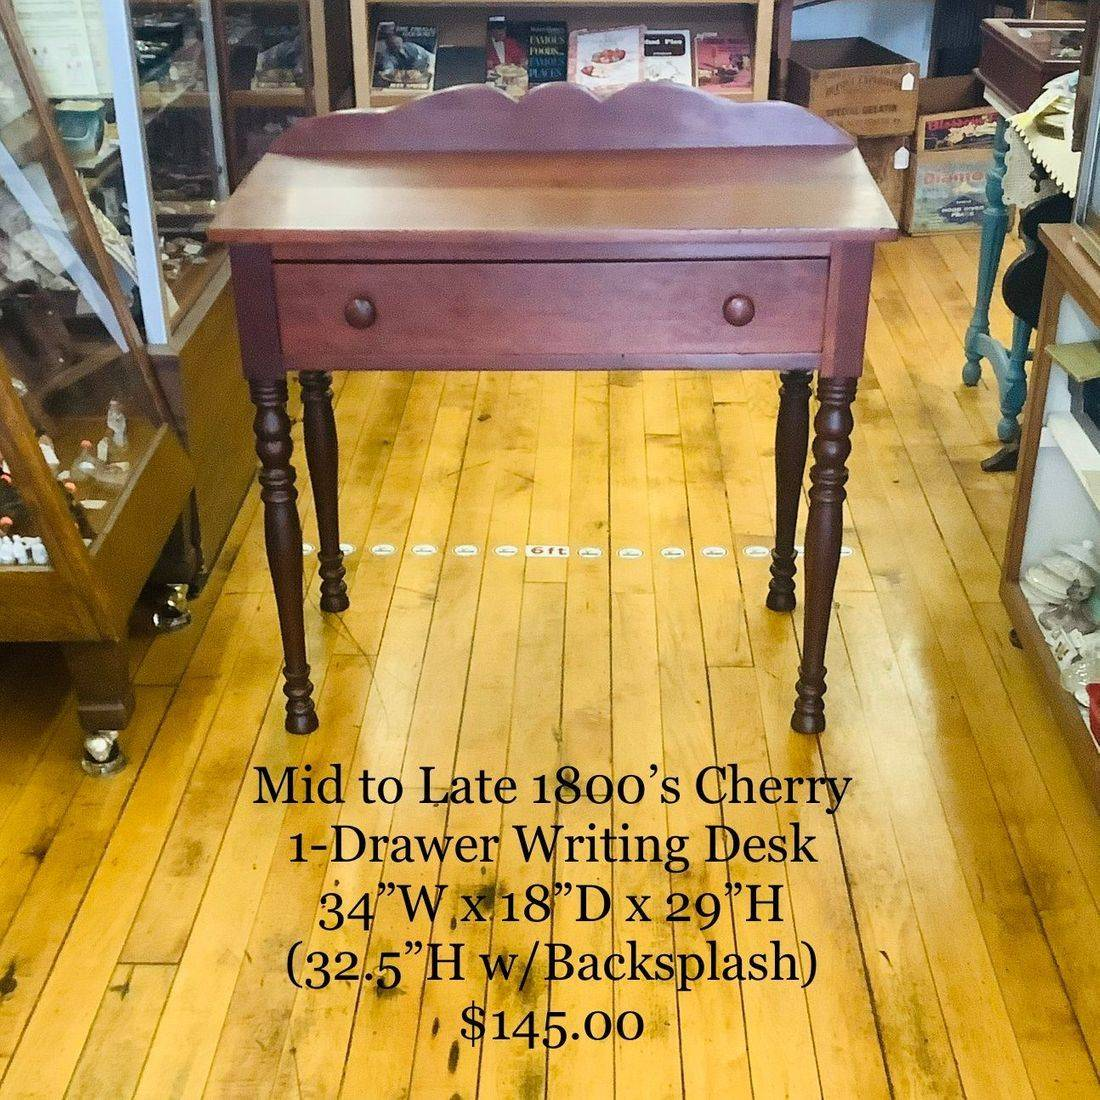 Mid to Late 1800's Cherry 1-Drawer Writing Desk   $145.00